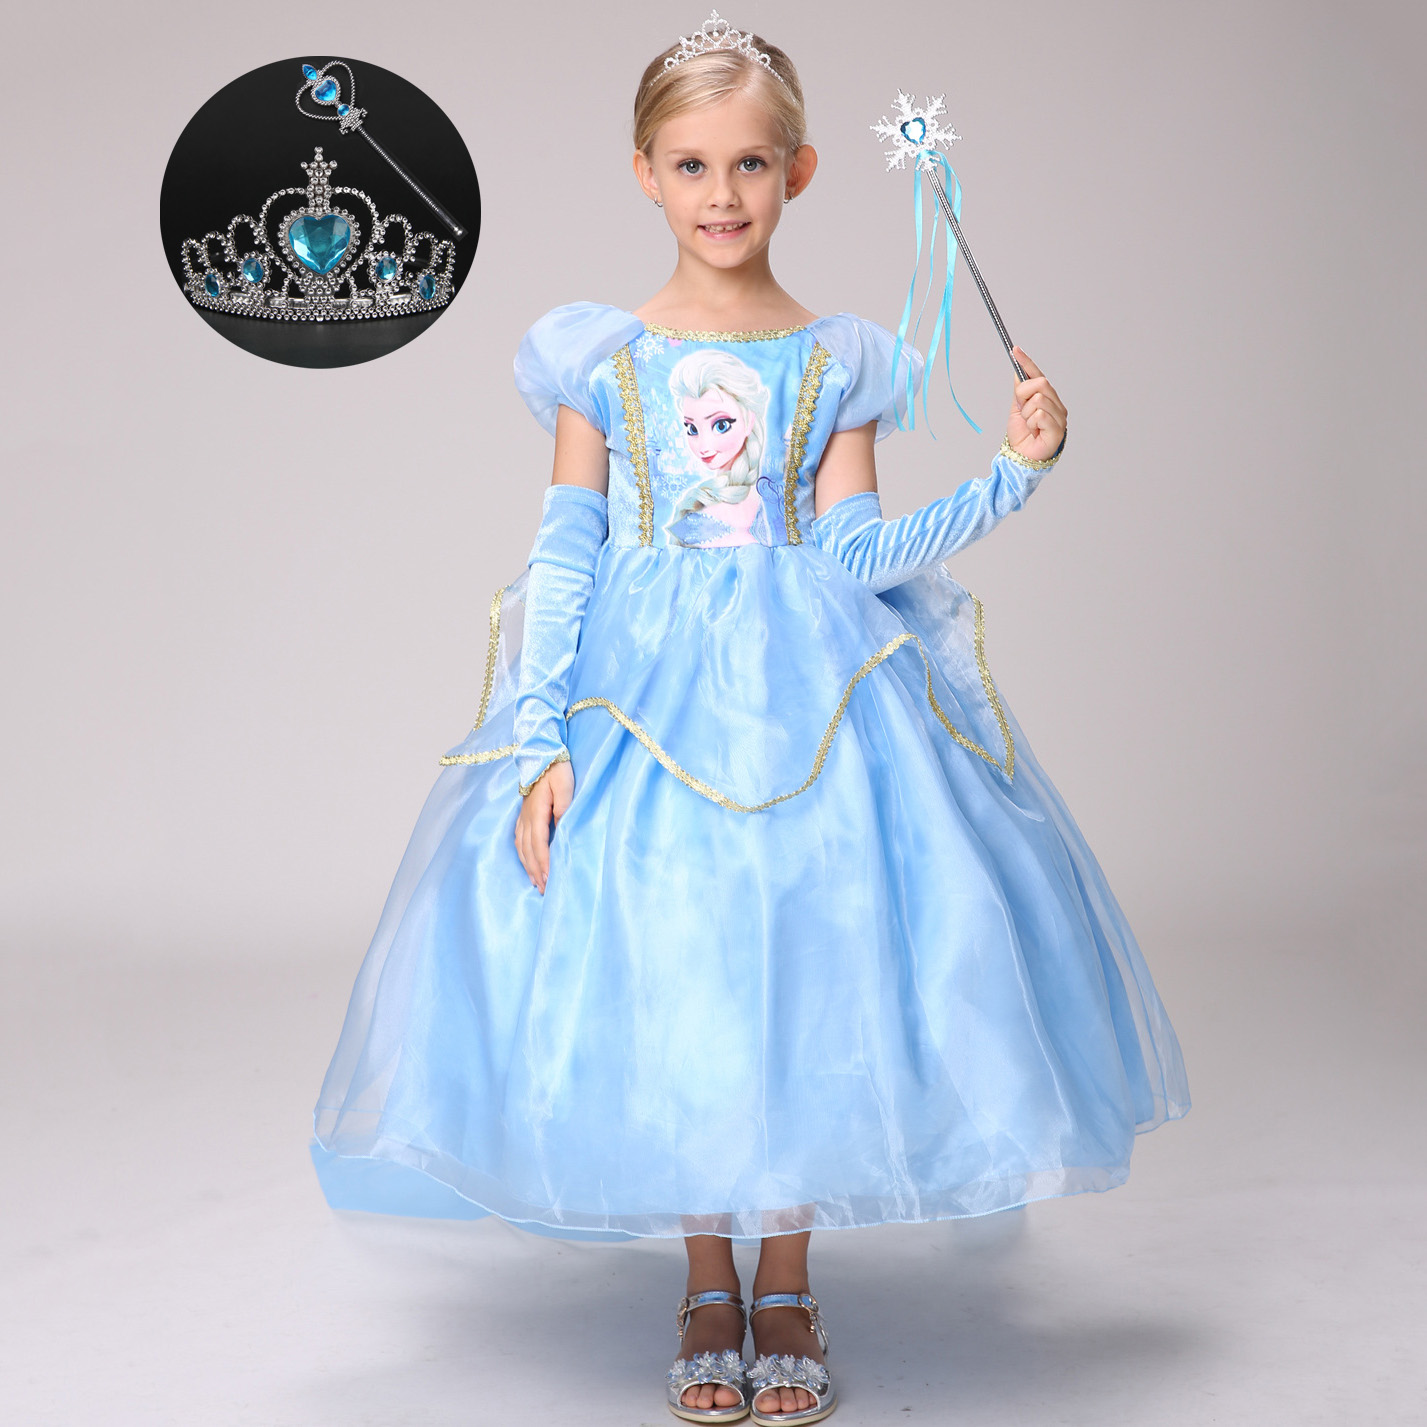 Light Blue 6 Layers Kids Clothes Birthday Party Wear Promotion High Quality Girls Princess Anna Elsa Cosplay Girl Dress 4good kids s45 blue